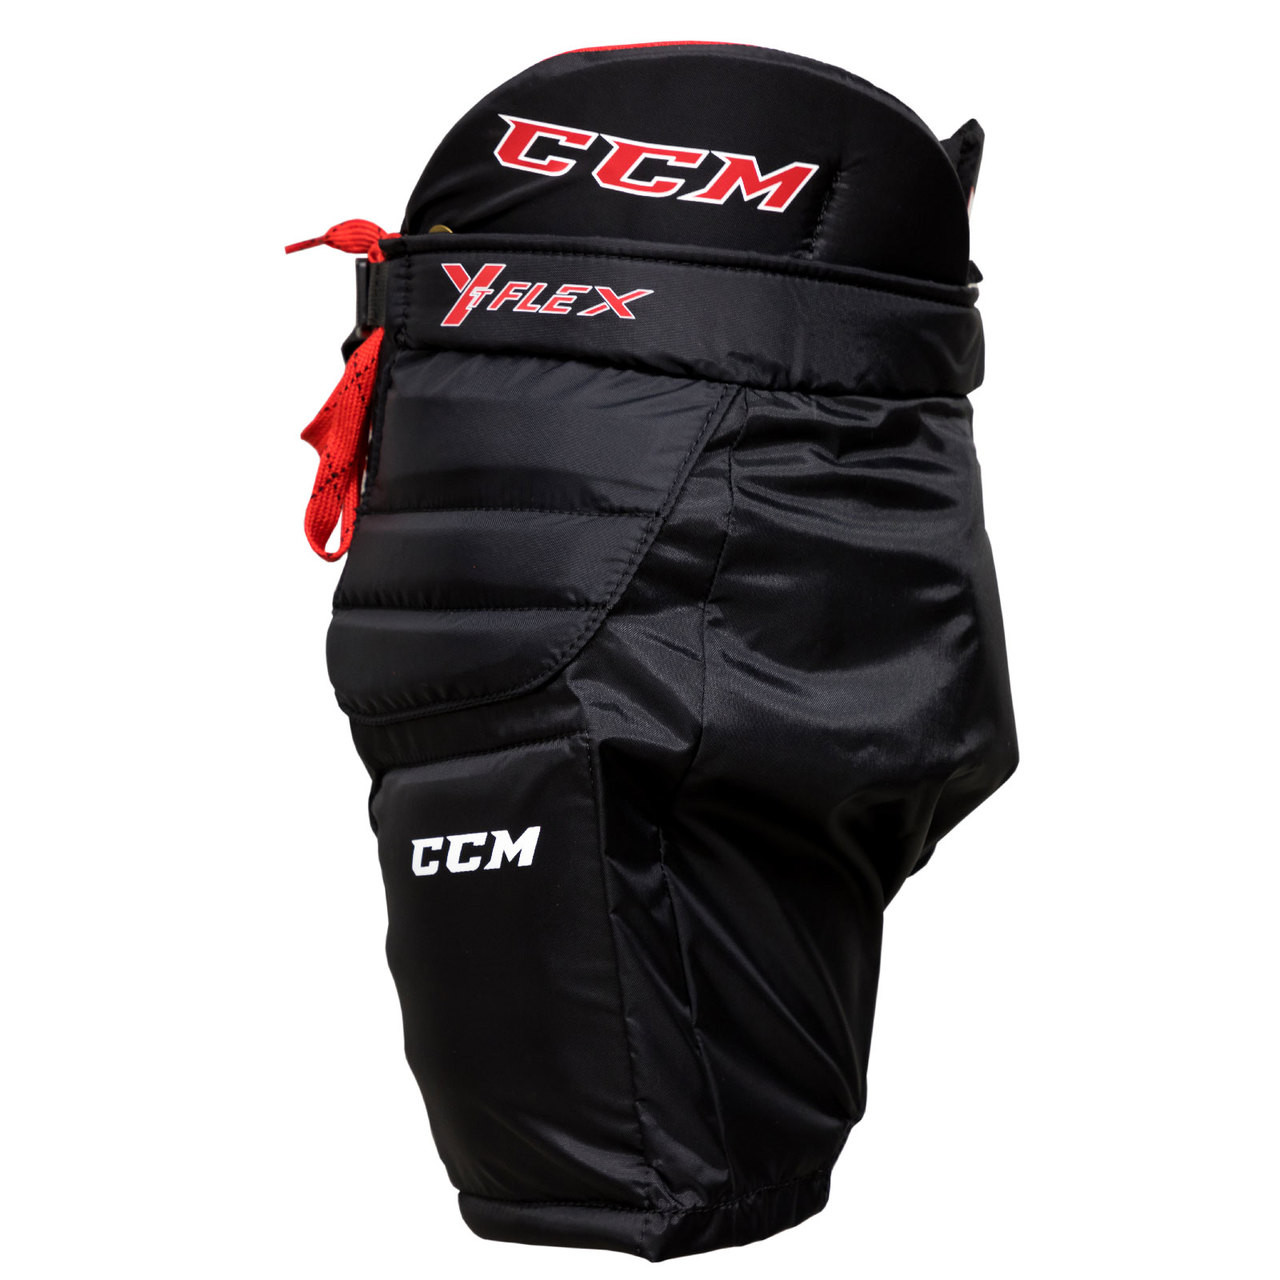 CCM YFlex Youth Hockey Goalie Pants - Black